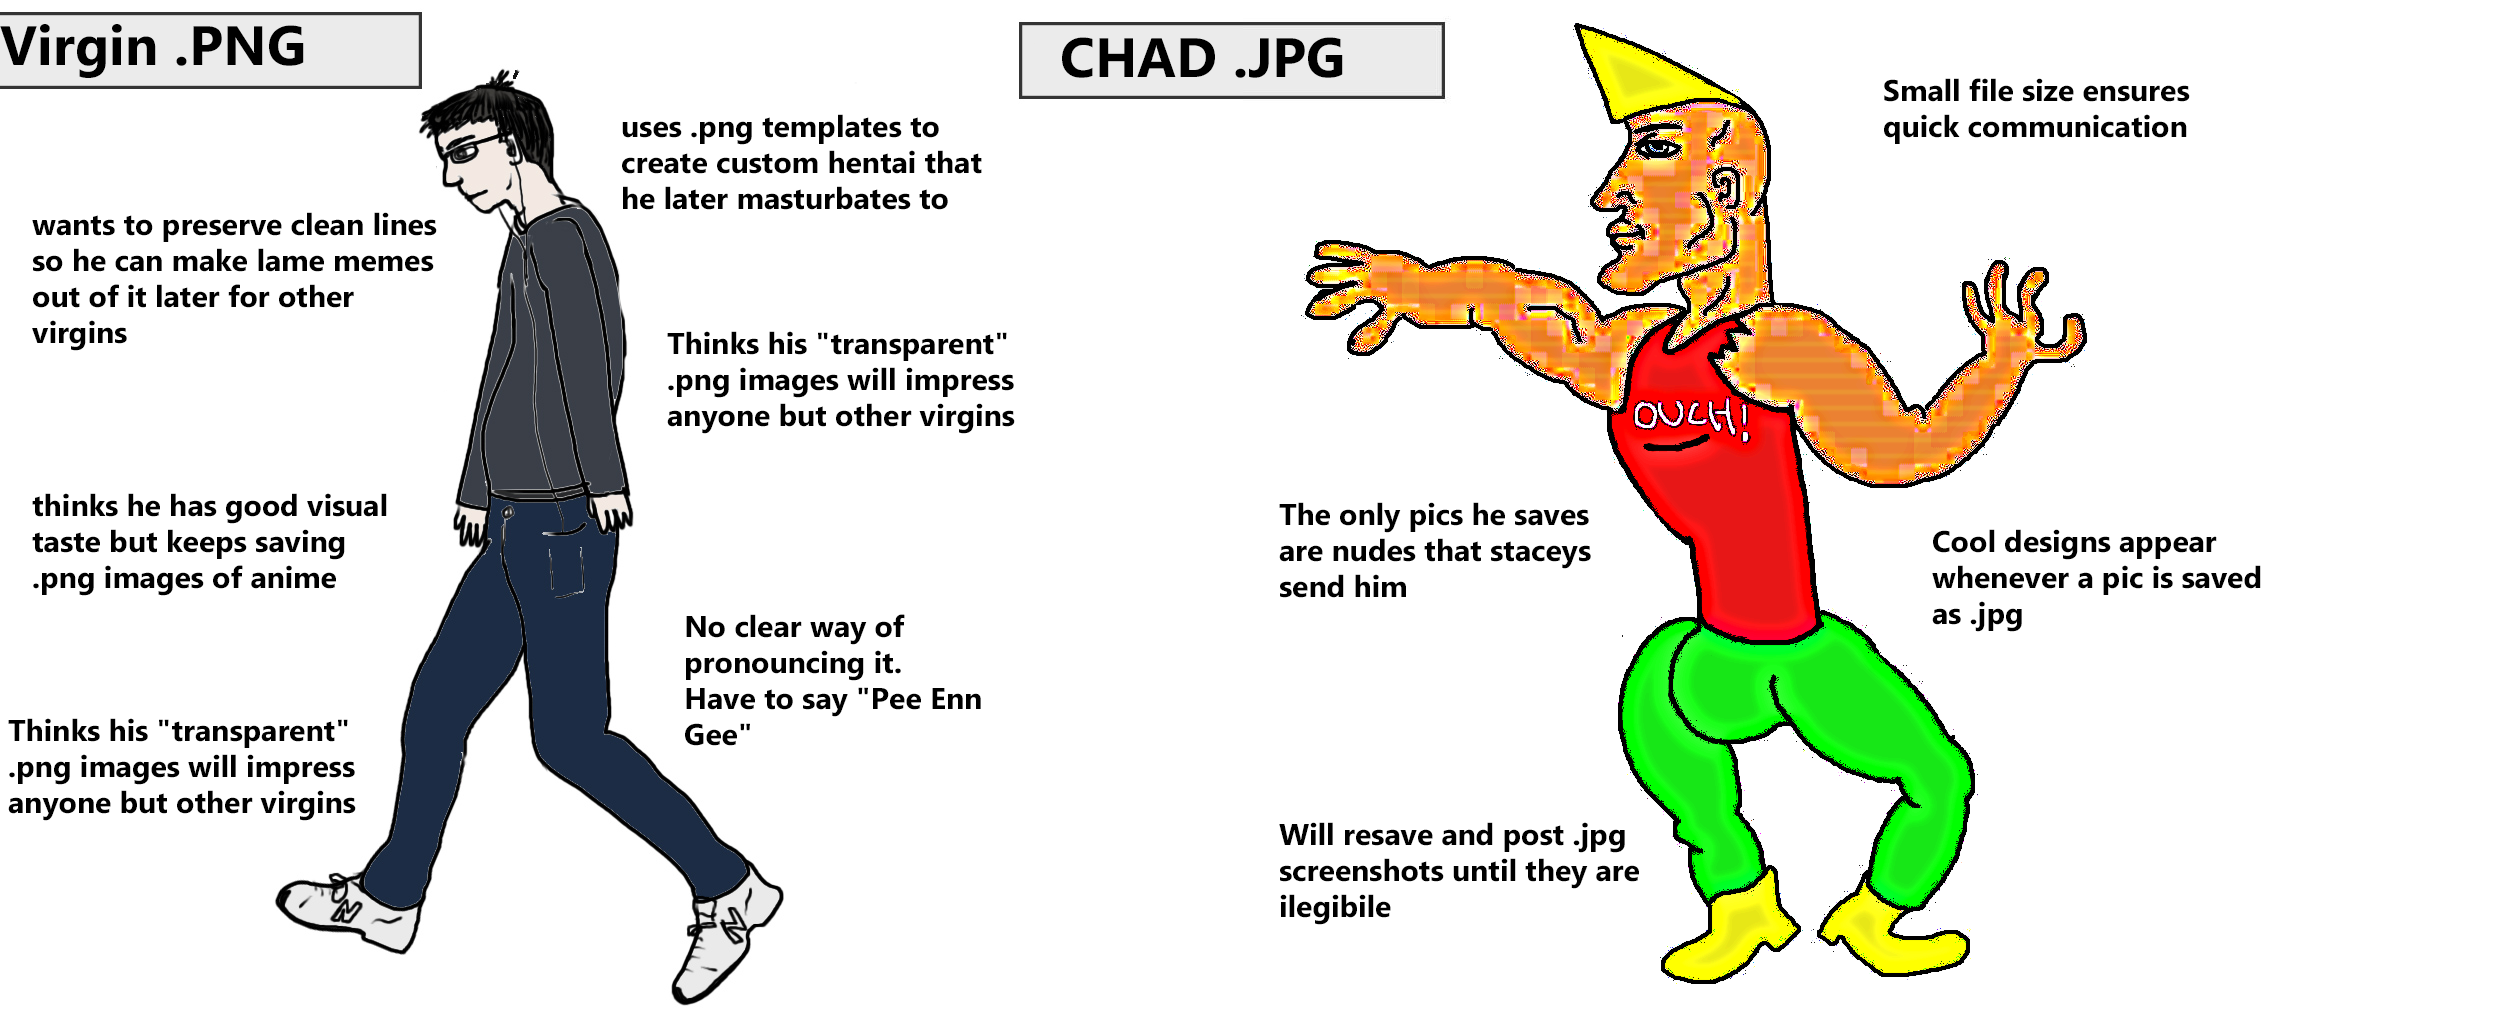 Virgin .PNG vs CHAD .JPG : virginvschad.